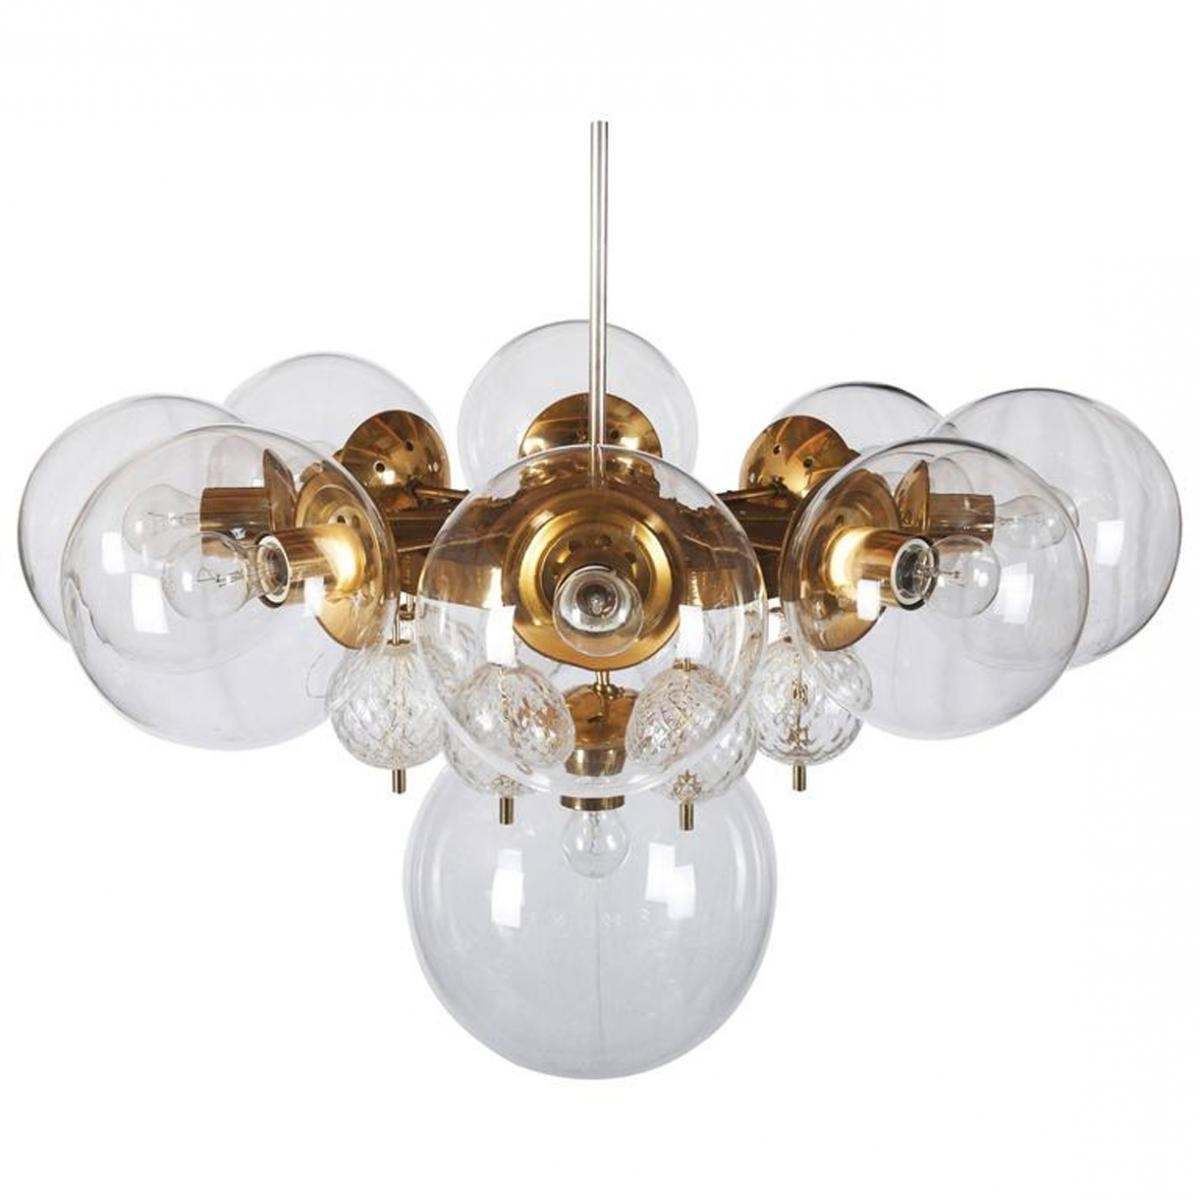 Large Brass Chandelier With Crystal Globes From Kamenicky Senov Pertaining To Popular Large Brass Chandelier (View 11 of 15)